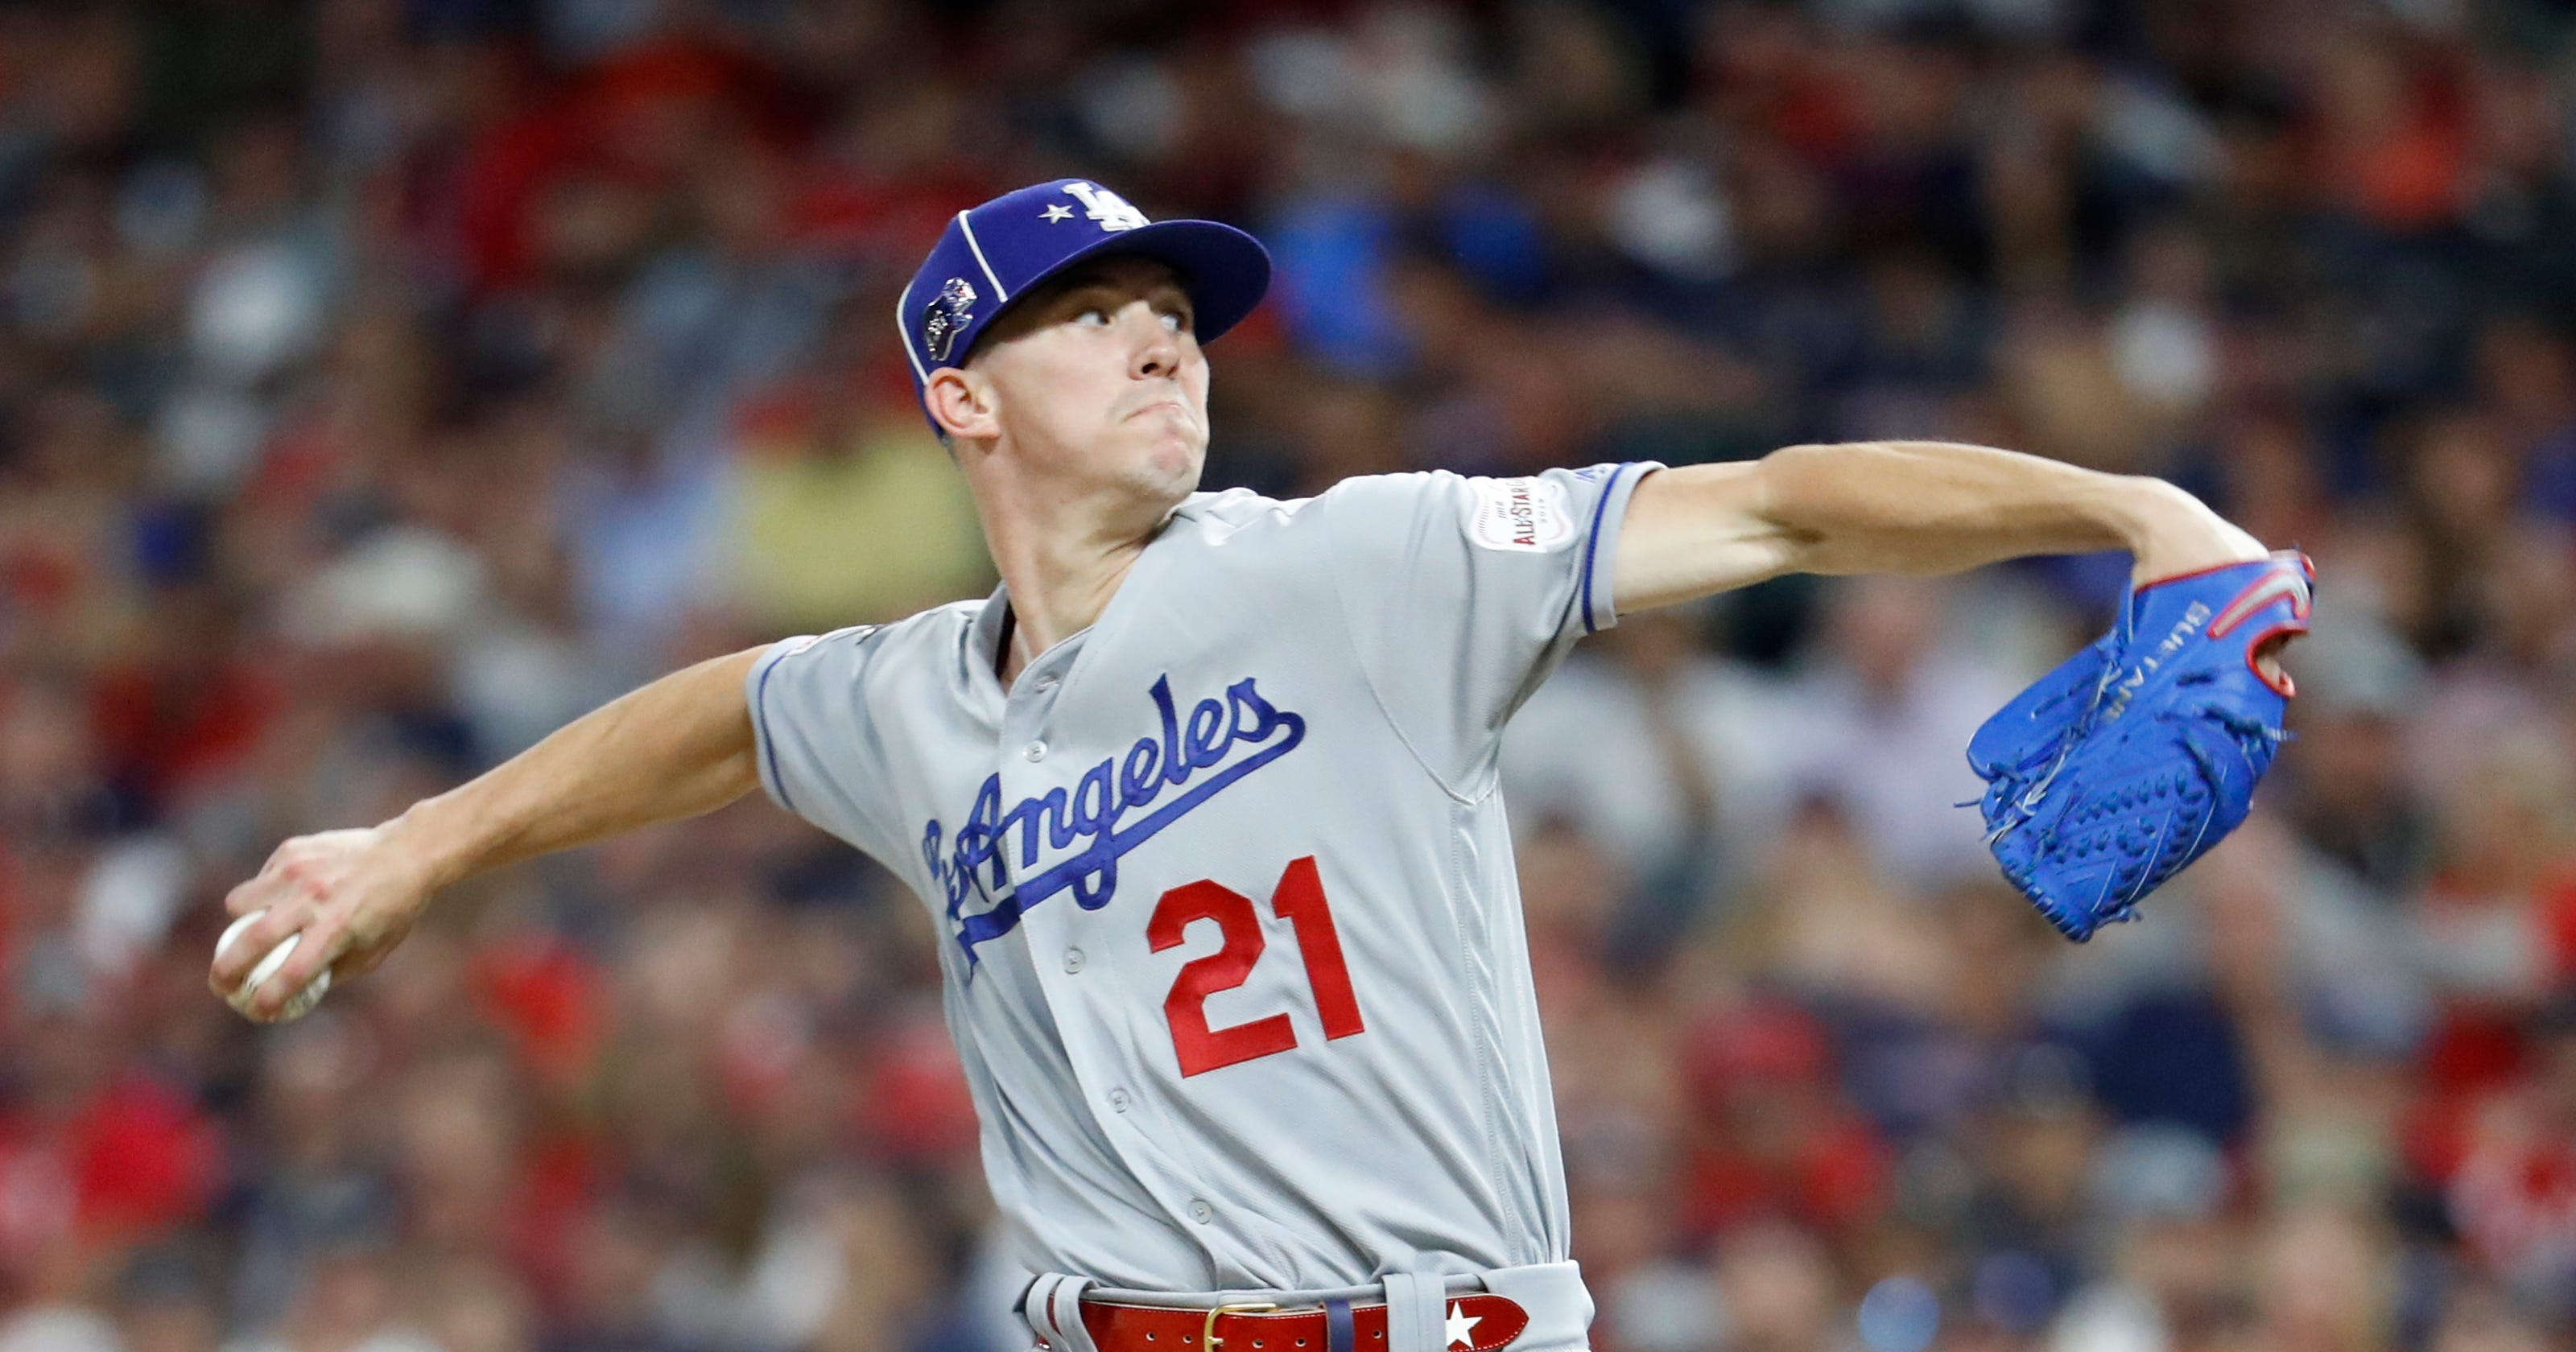 Baseball America Top 100 Prospects 2020.Mlb All Star Game Five Kentucky Candidates For 2020 Honors